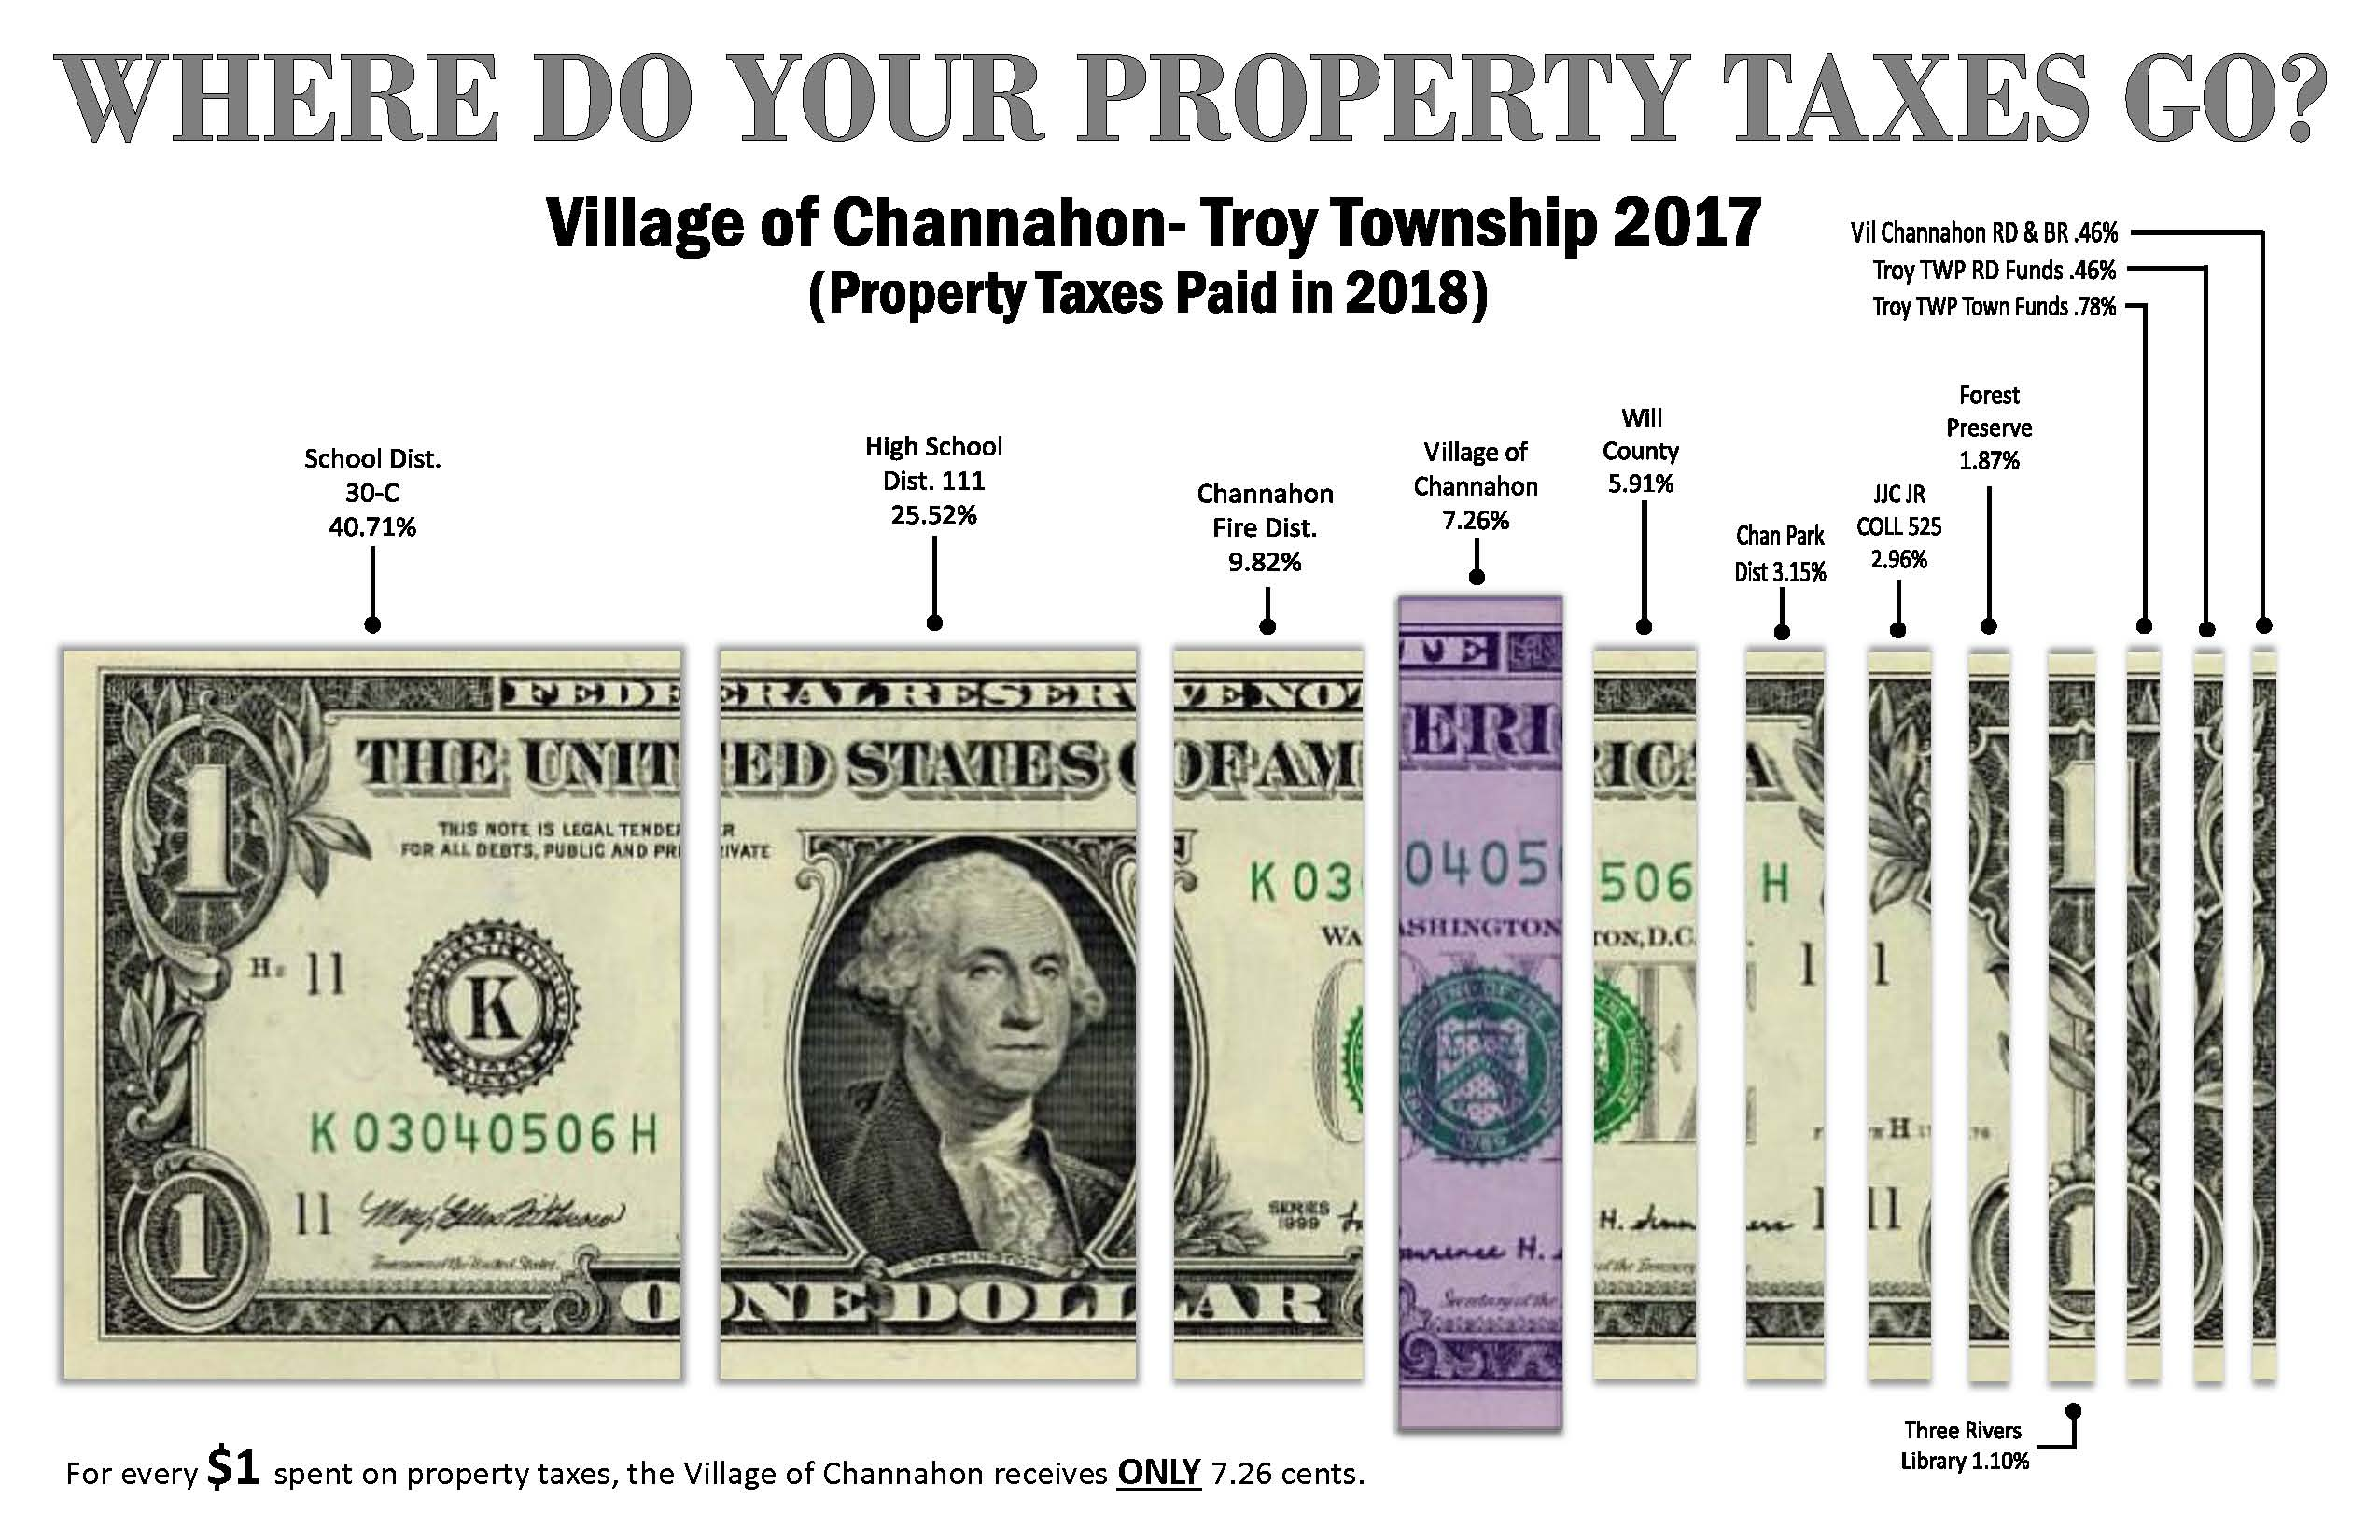 Troy Township - Property Taxes Paid in 2018 (PDF)